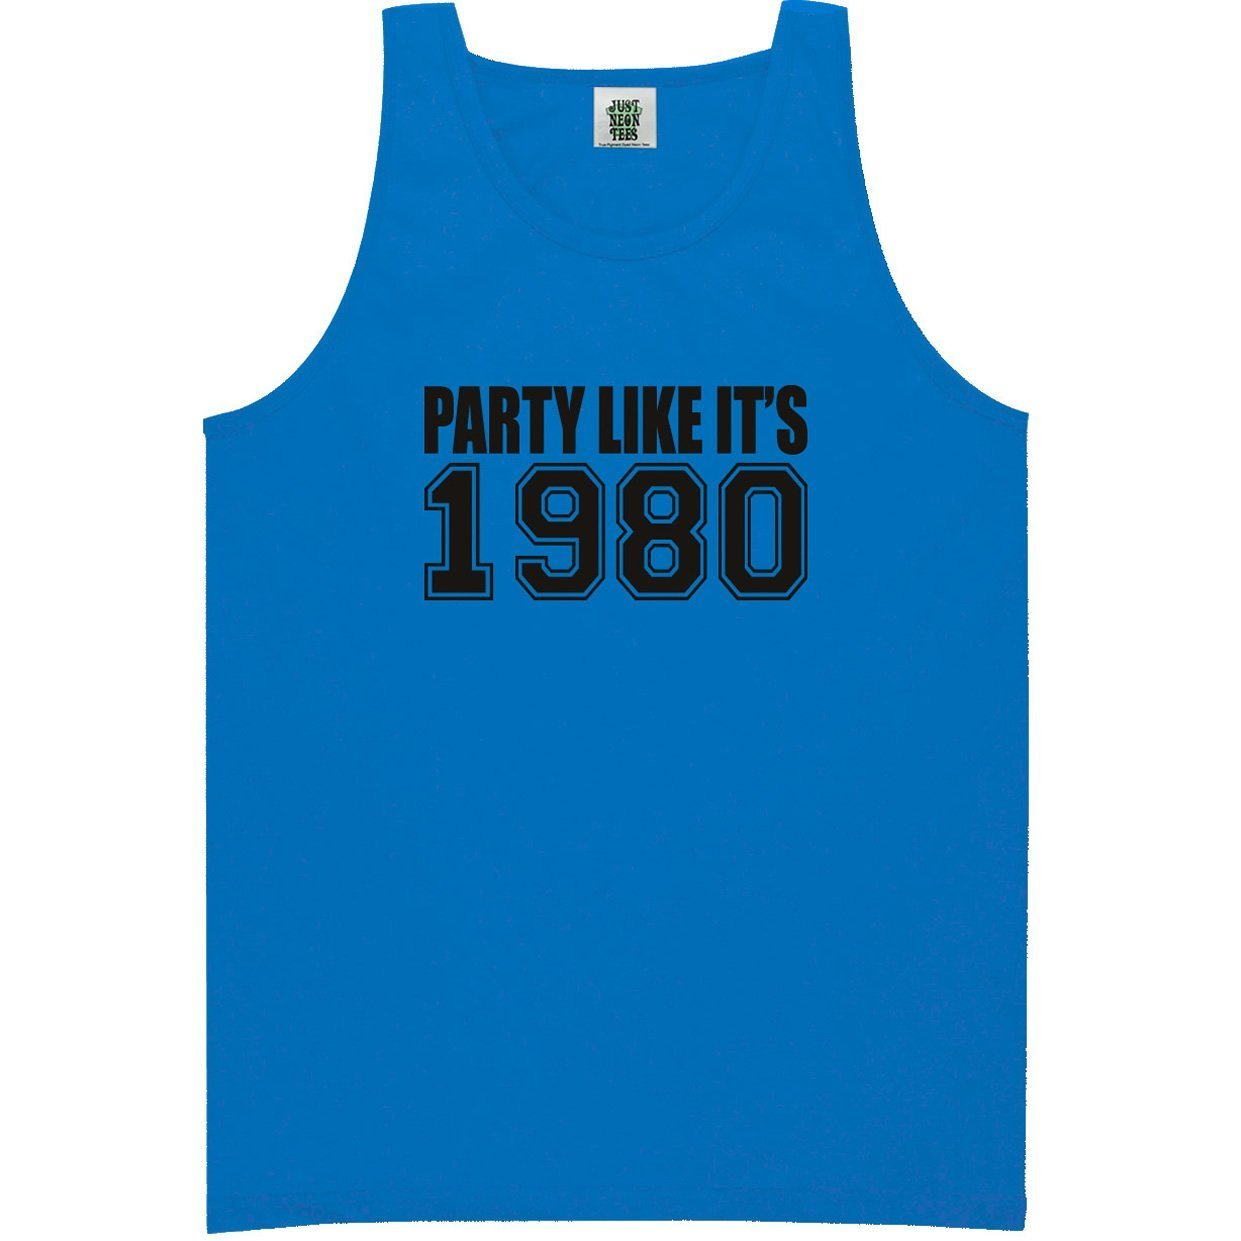 Party Like Its 1980 Bright Neon Tank Top